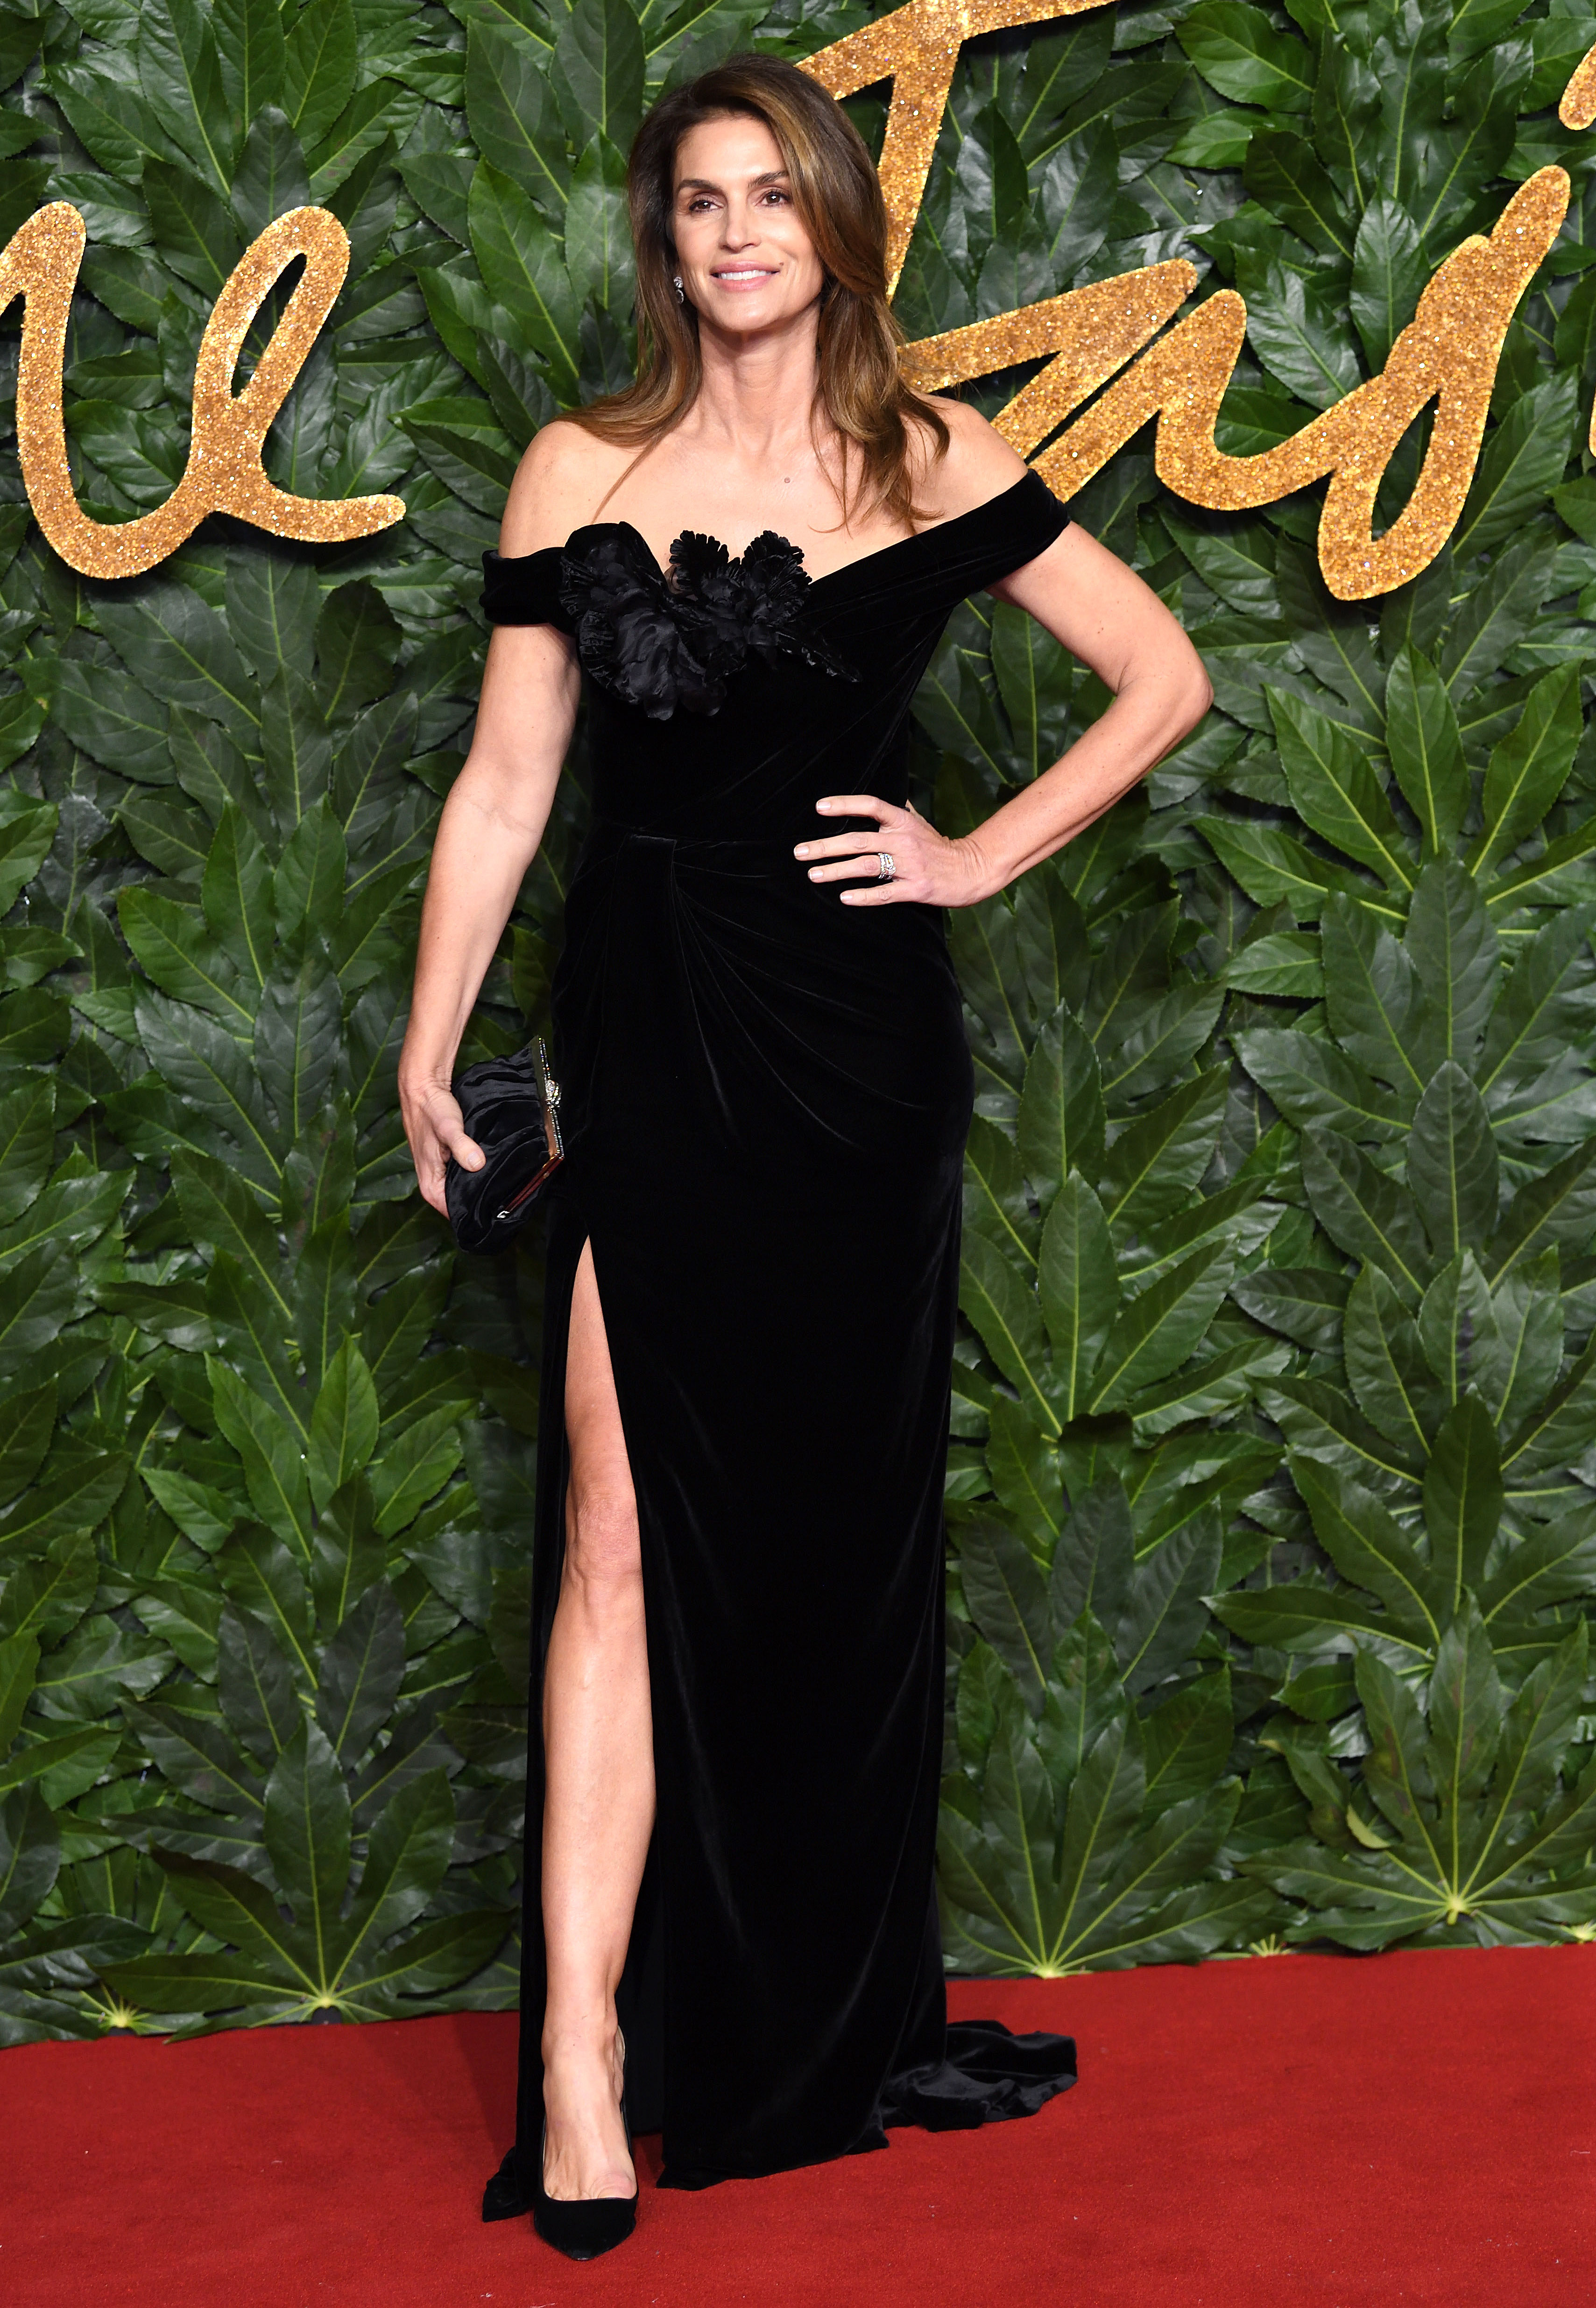 cindy-crawford - The ageless model showed some leg in flower-adorned off-the-shoulder Marchesa gown.